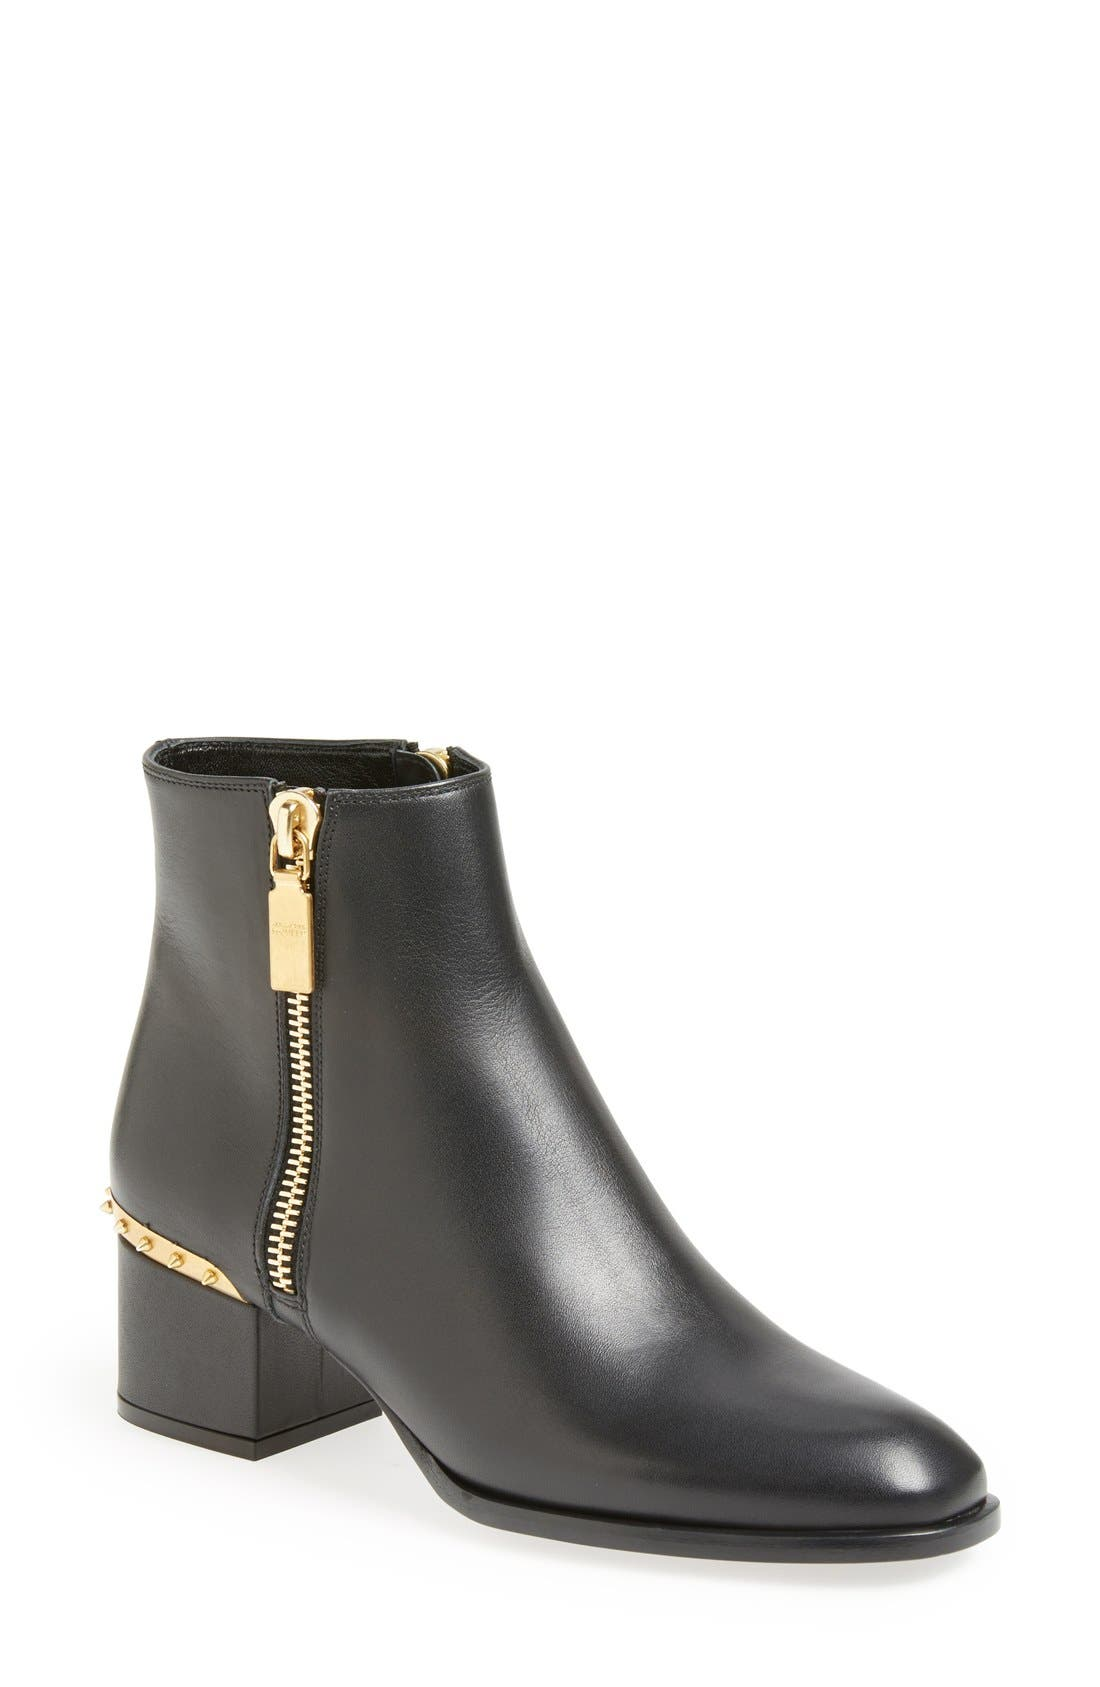 Alternate Image 1 Selected - Alexander McQueen Spike Short Boot (Women)